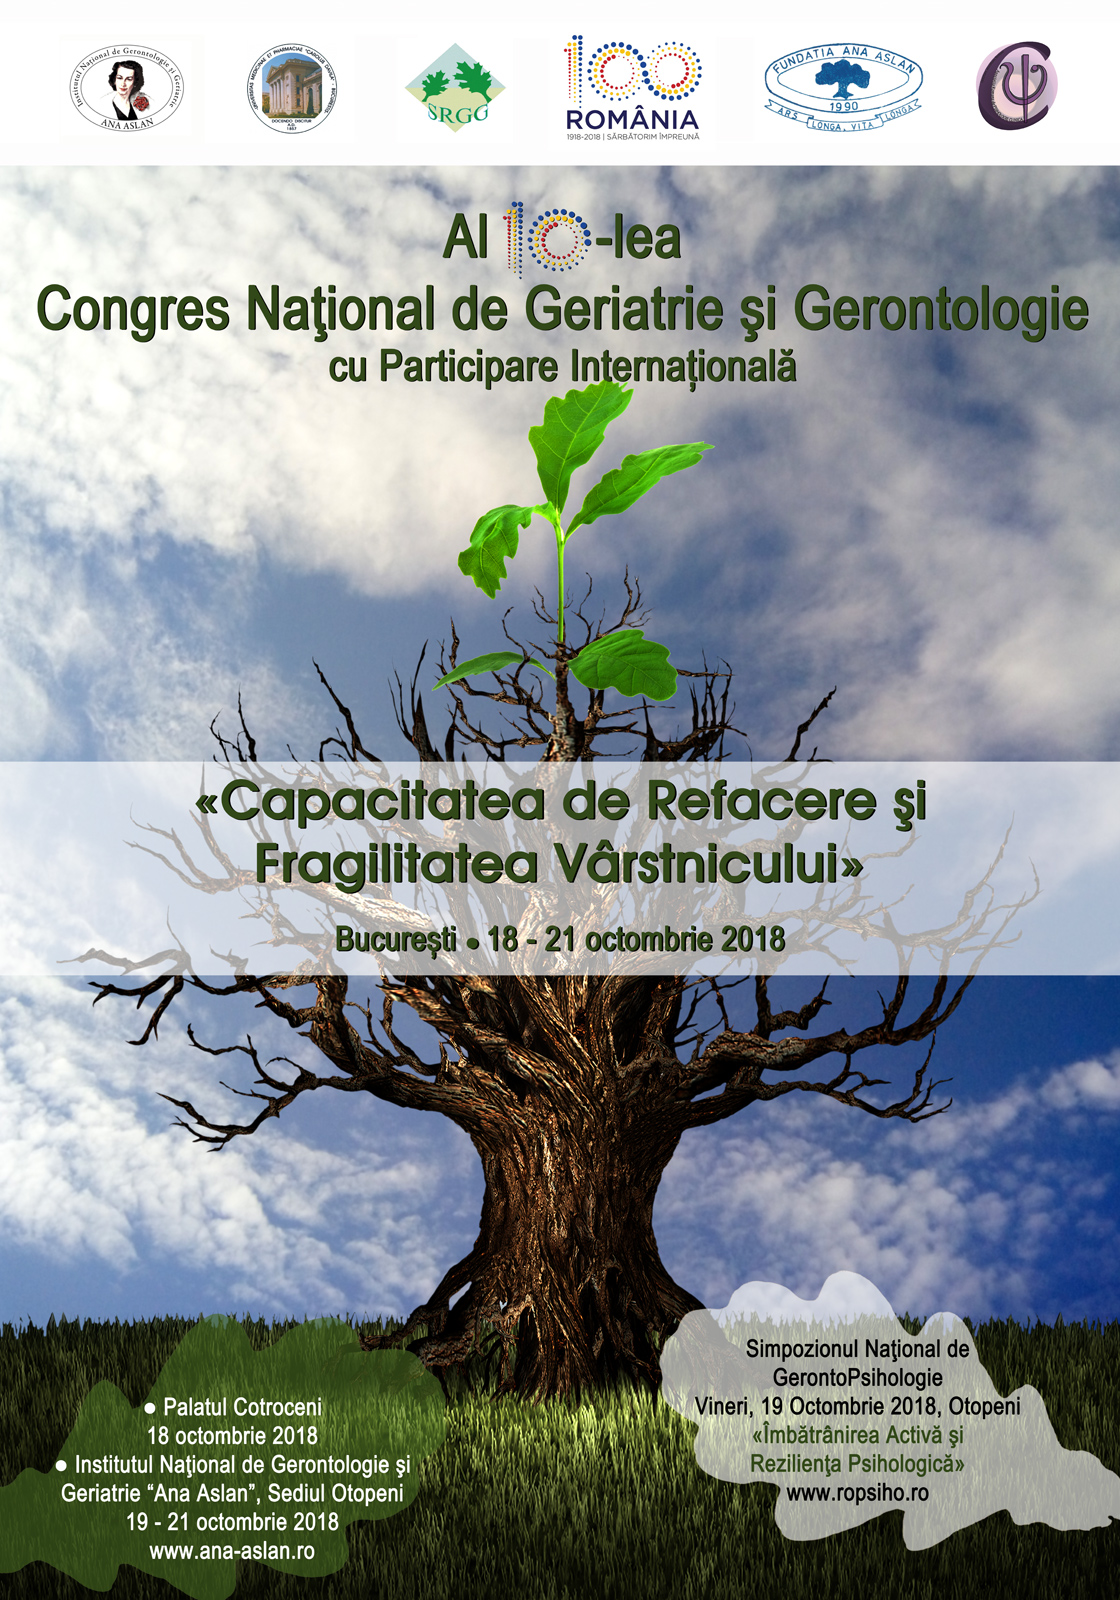 10th National Congress of Geriatrics and Gerontology with International Participation